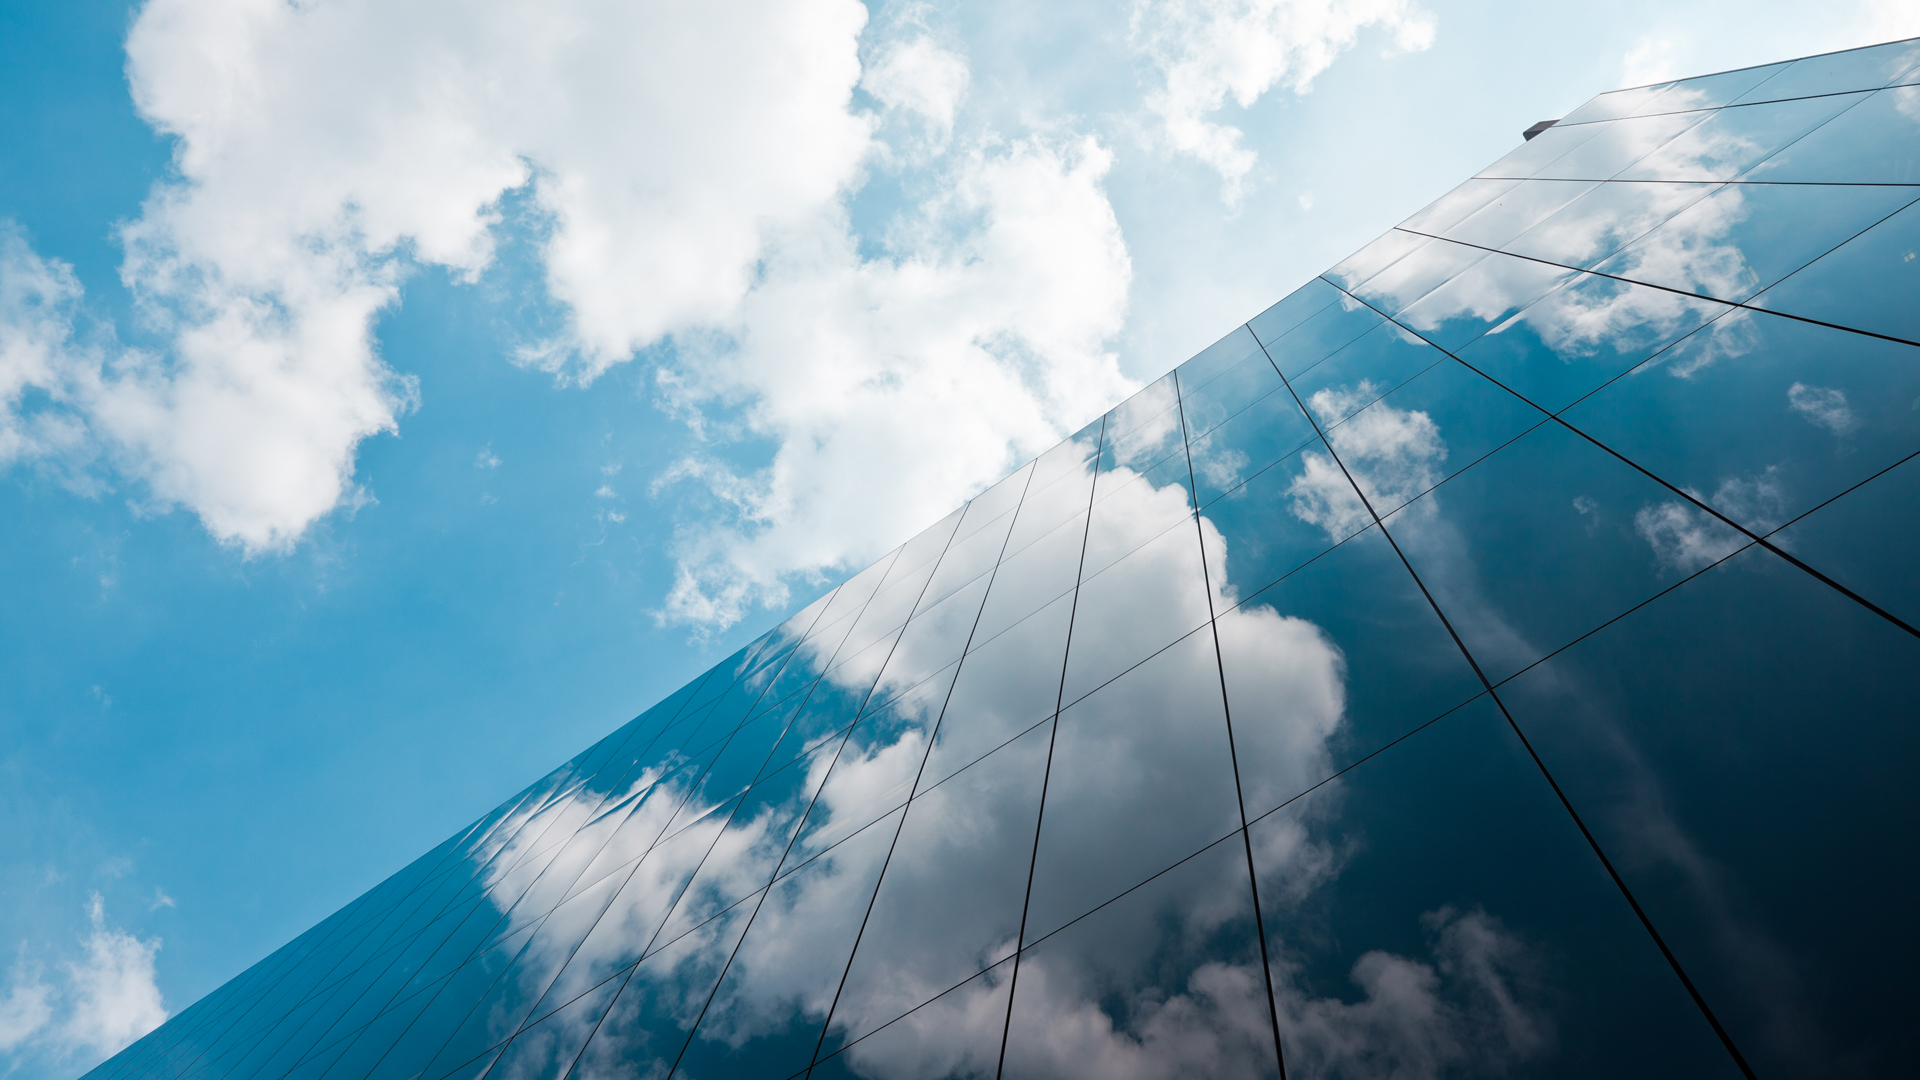 A building reflecting clouds